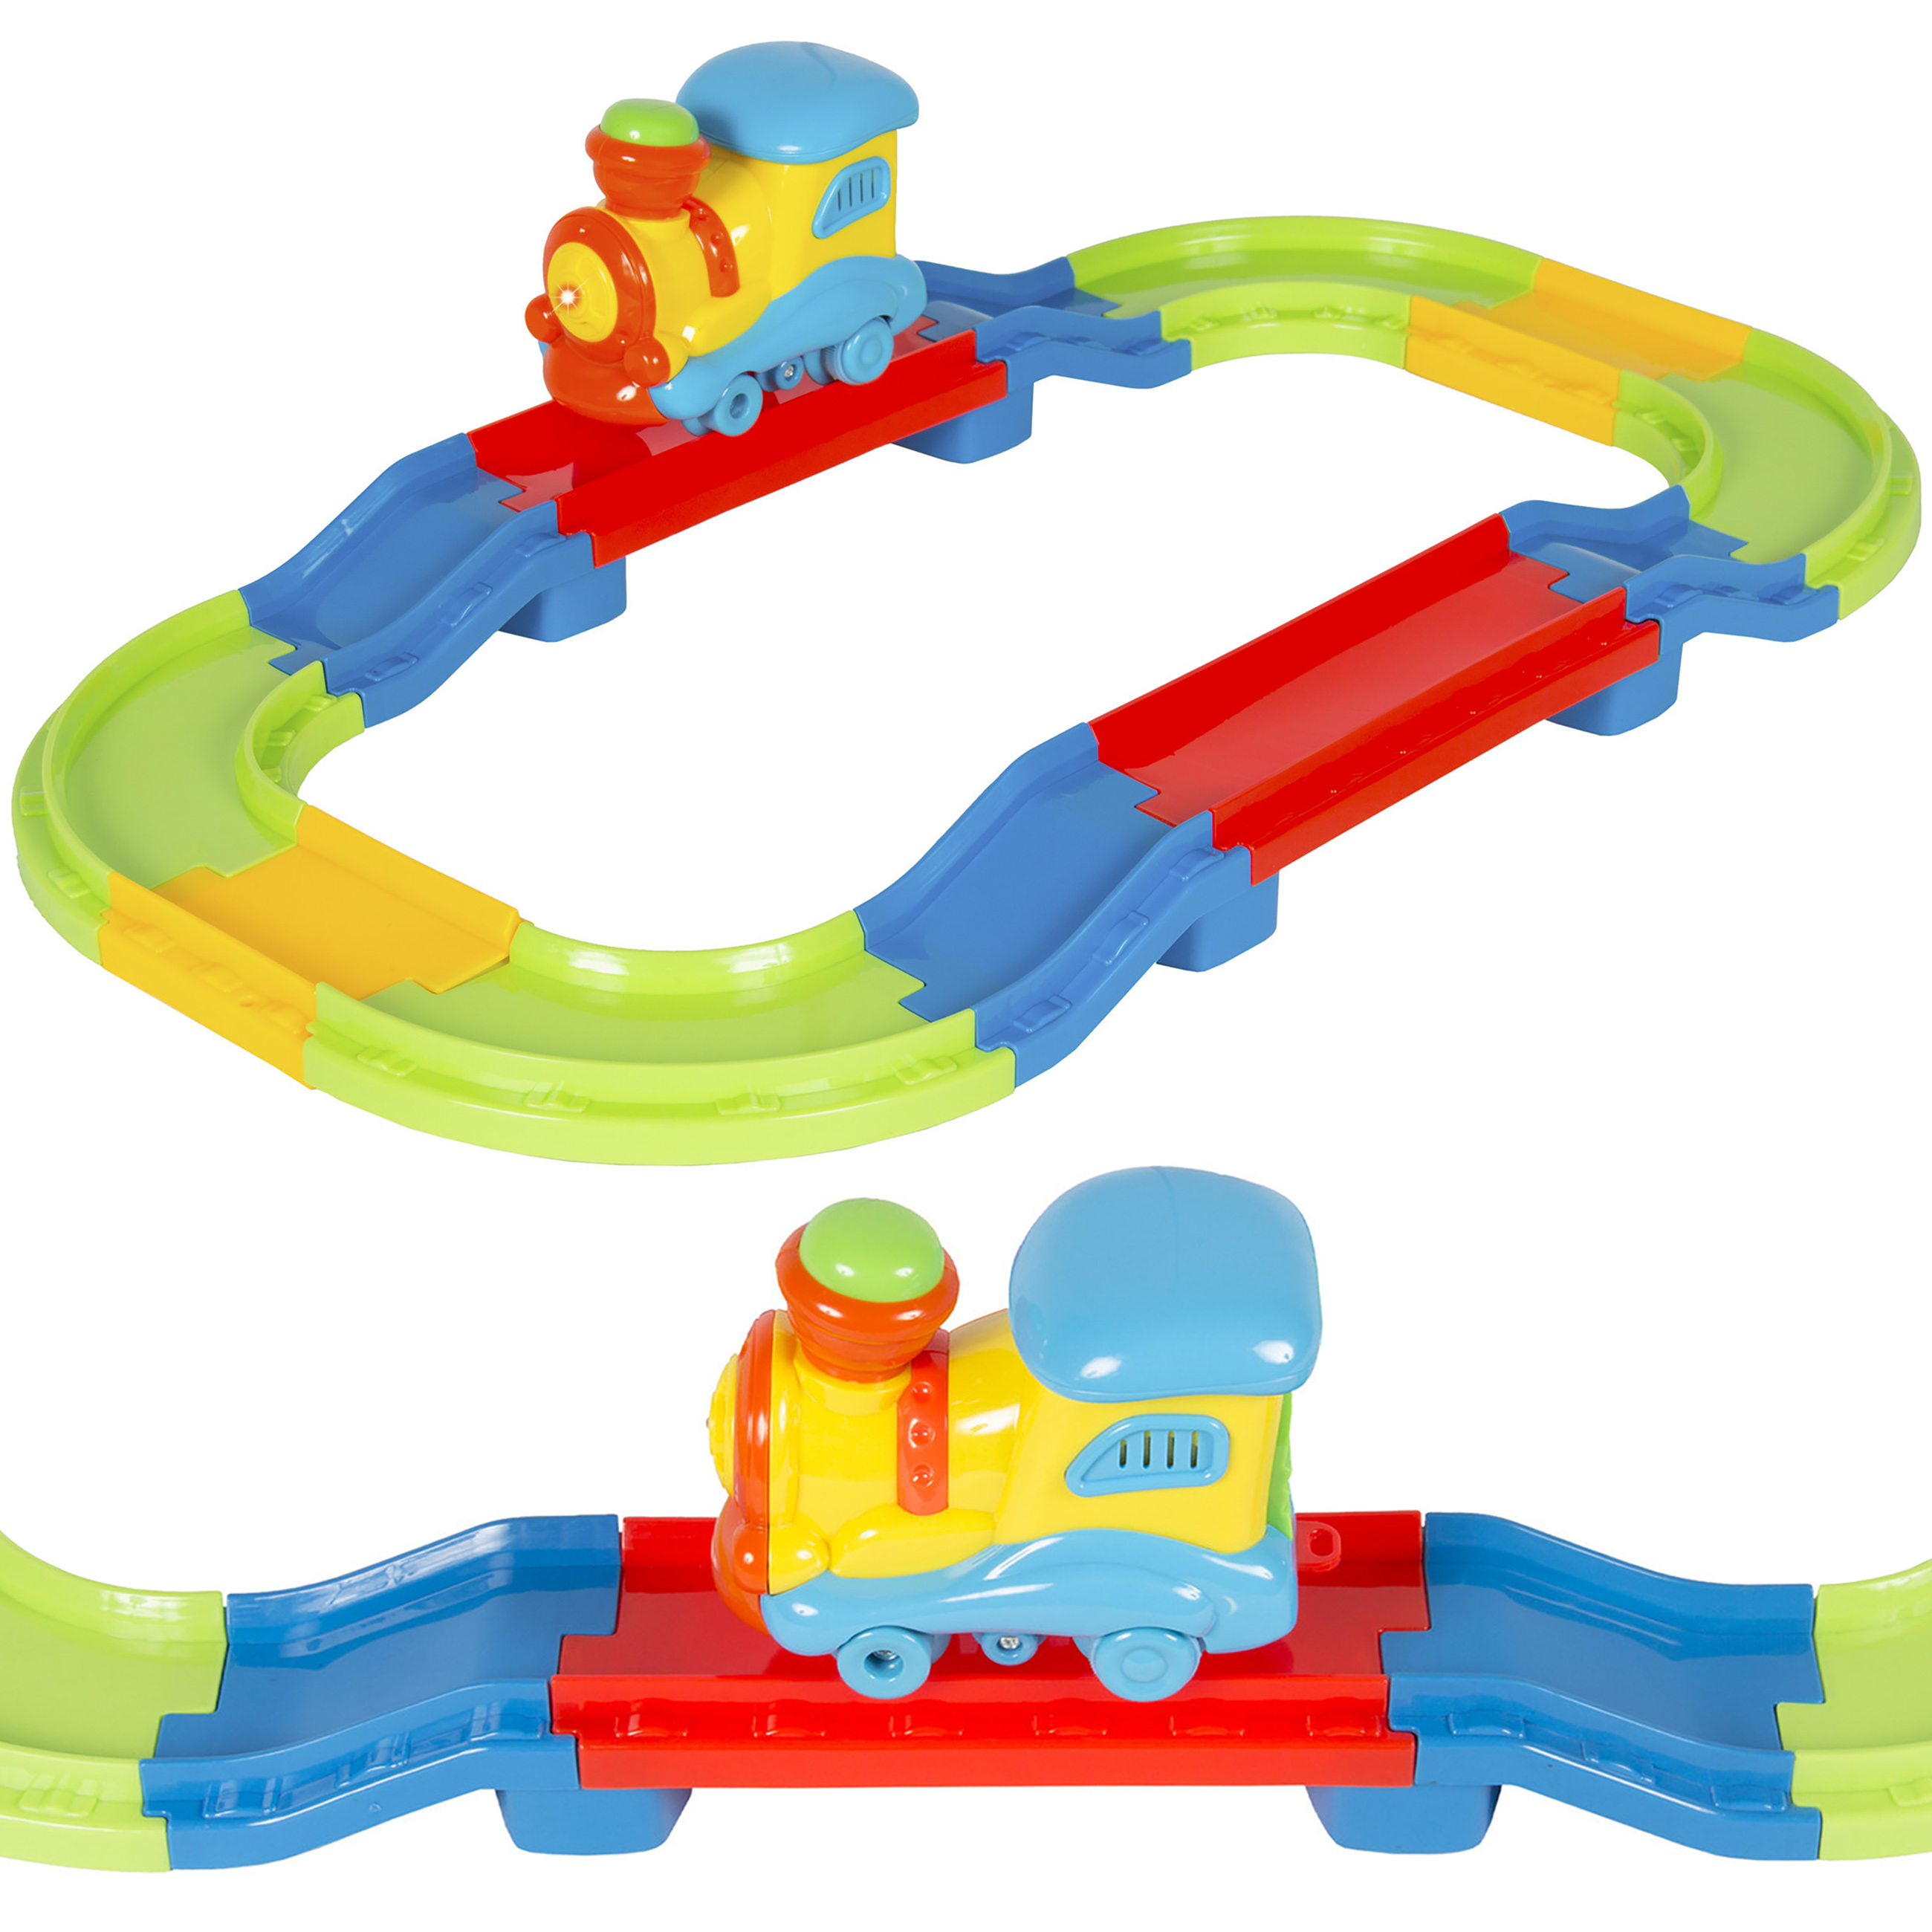 Kids Toy Beginners Electric Train Set With Lights and Sound Colorful Tracks Battery Operated Railway Car Set